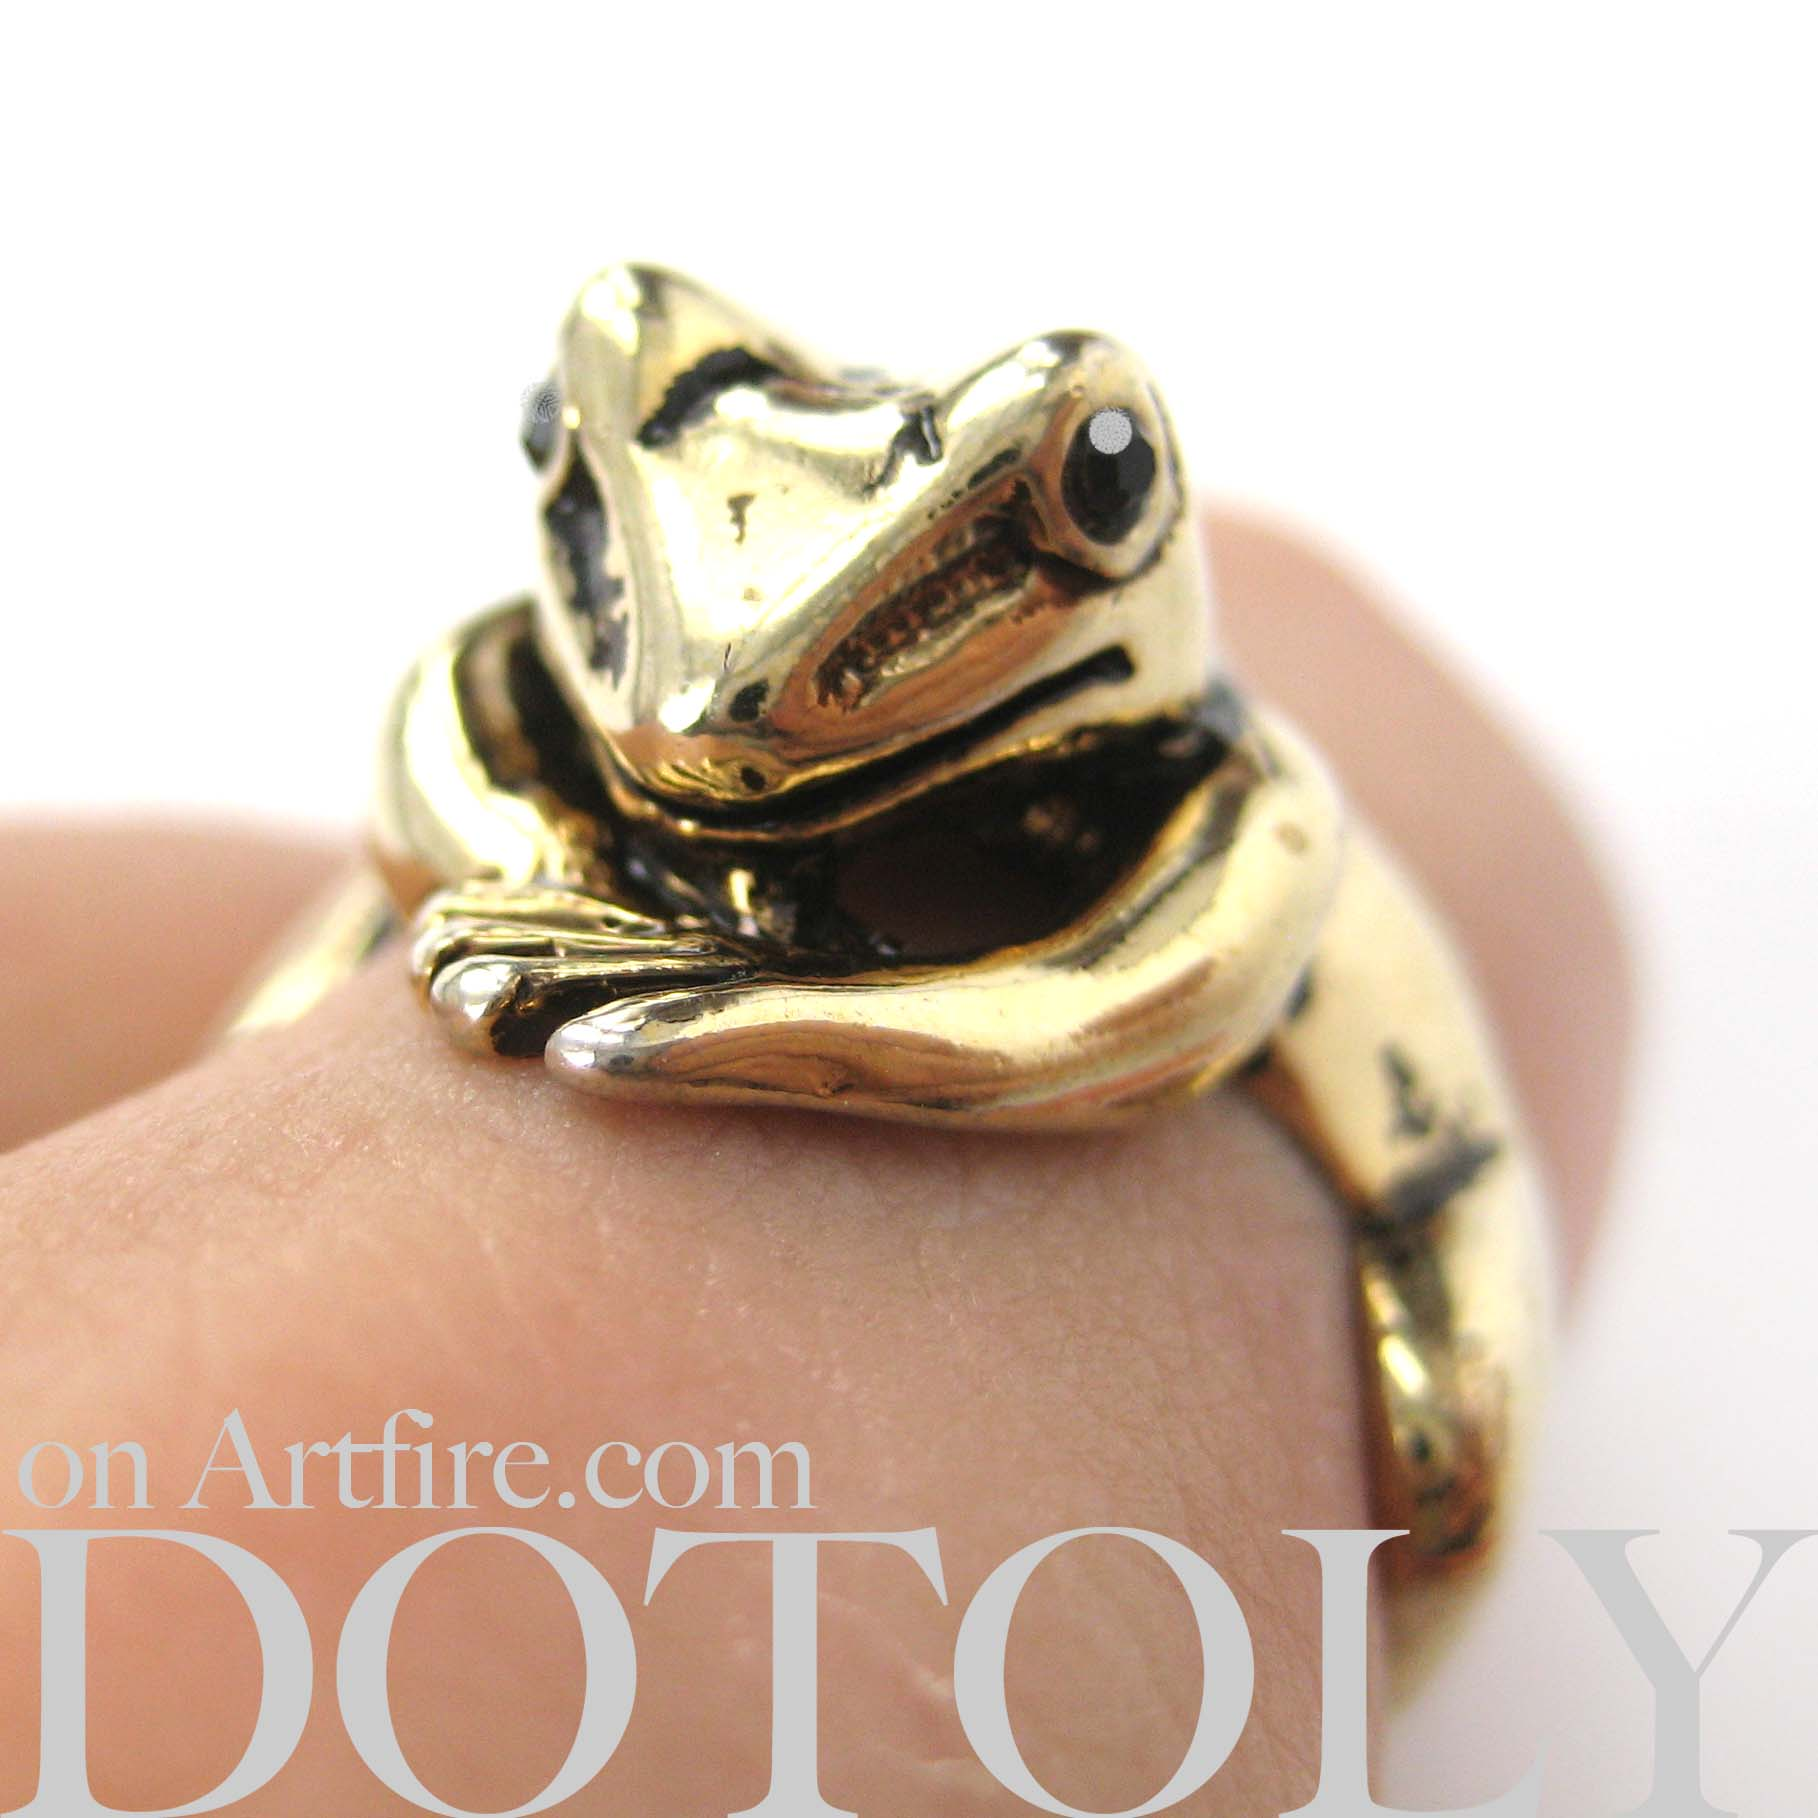 Miniature Frog Animal Wrap Around Ring in SHINY Gold in Sizes 4 to